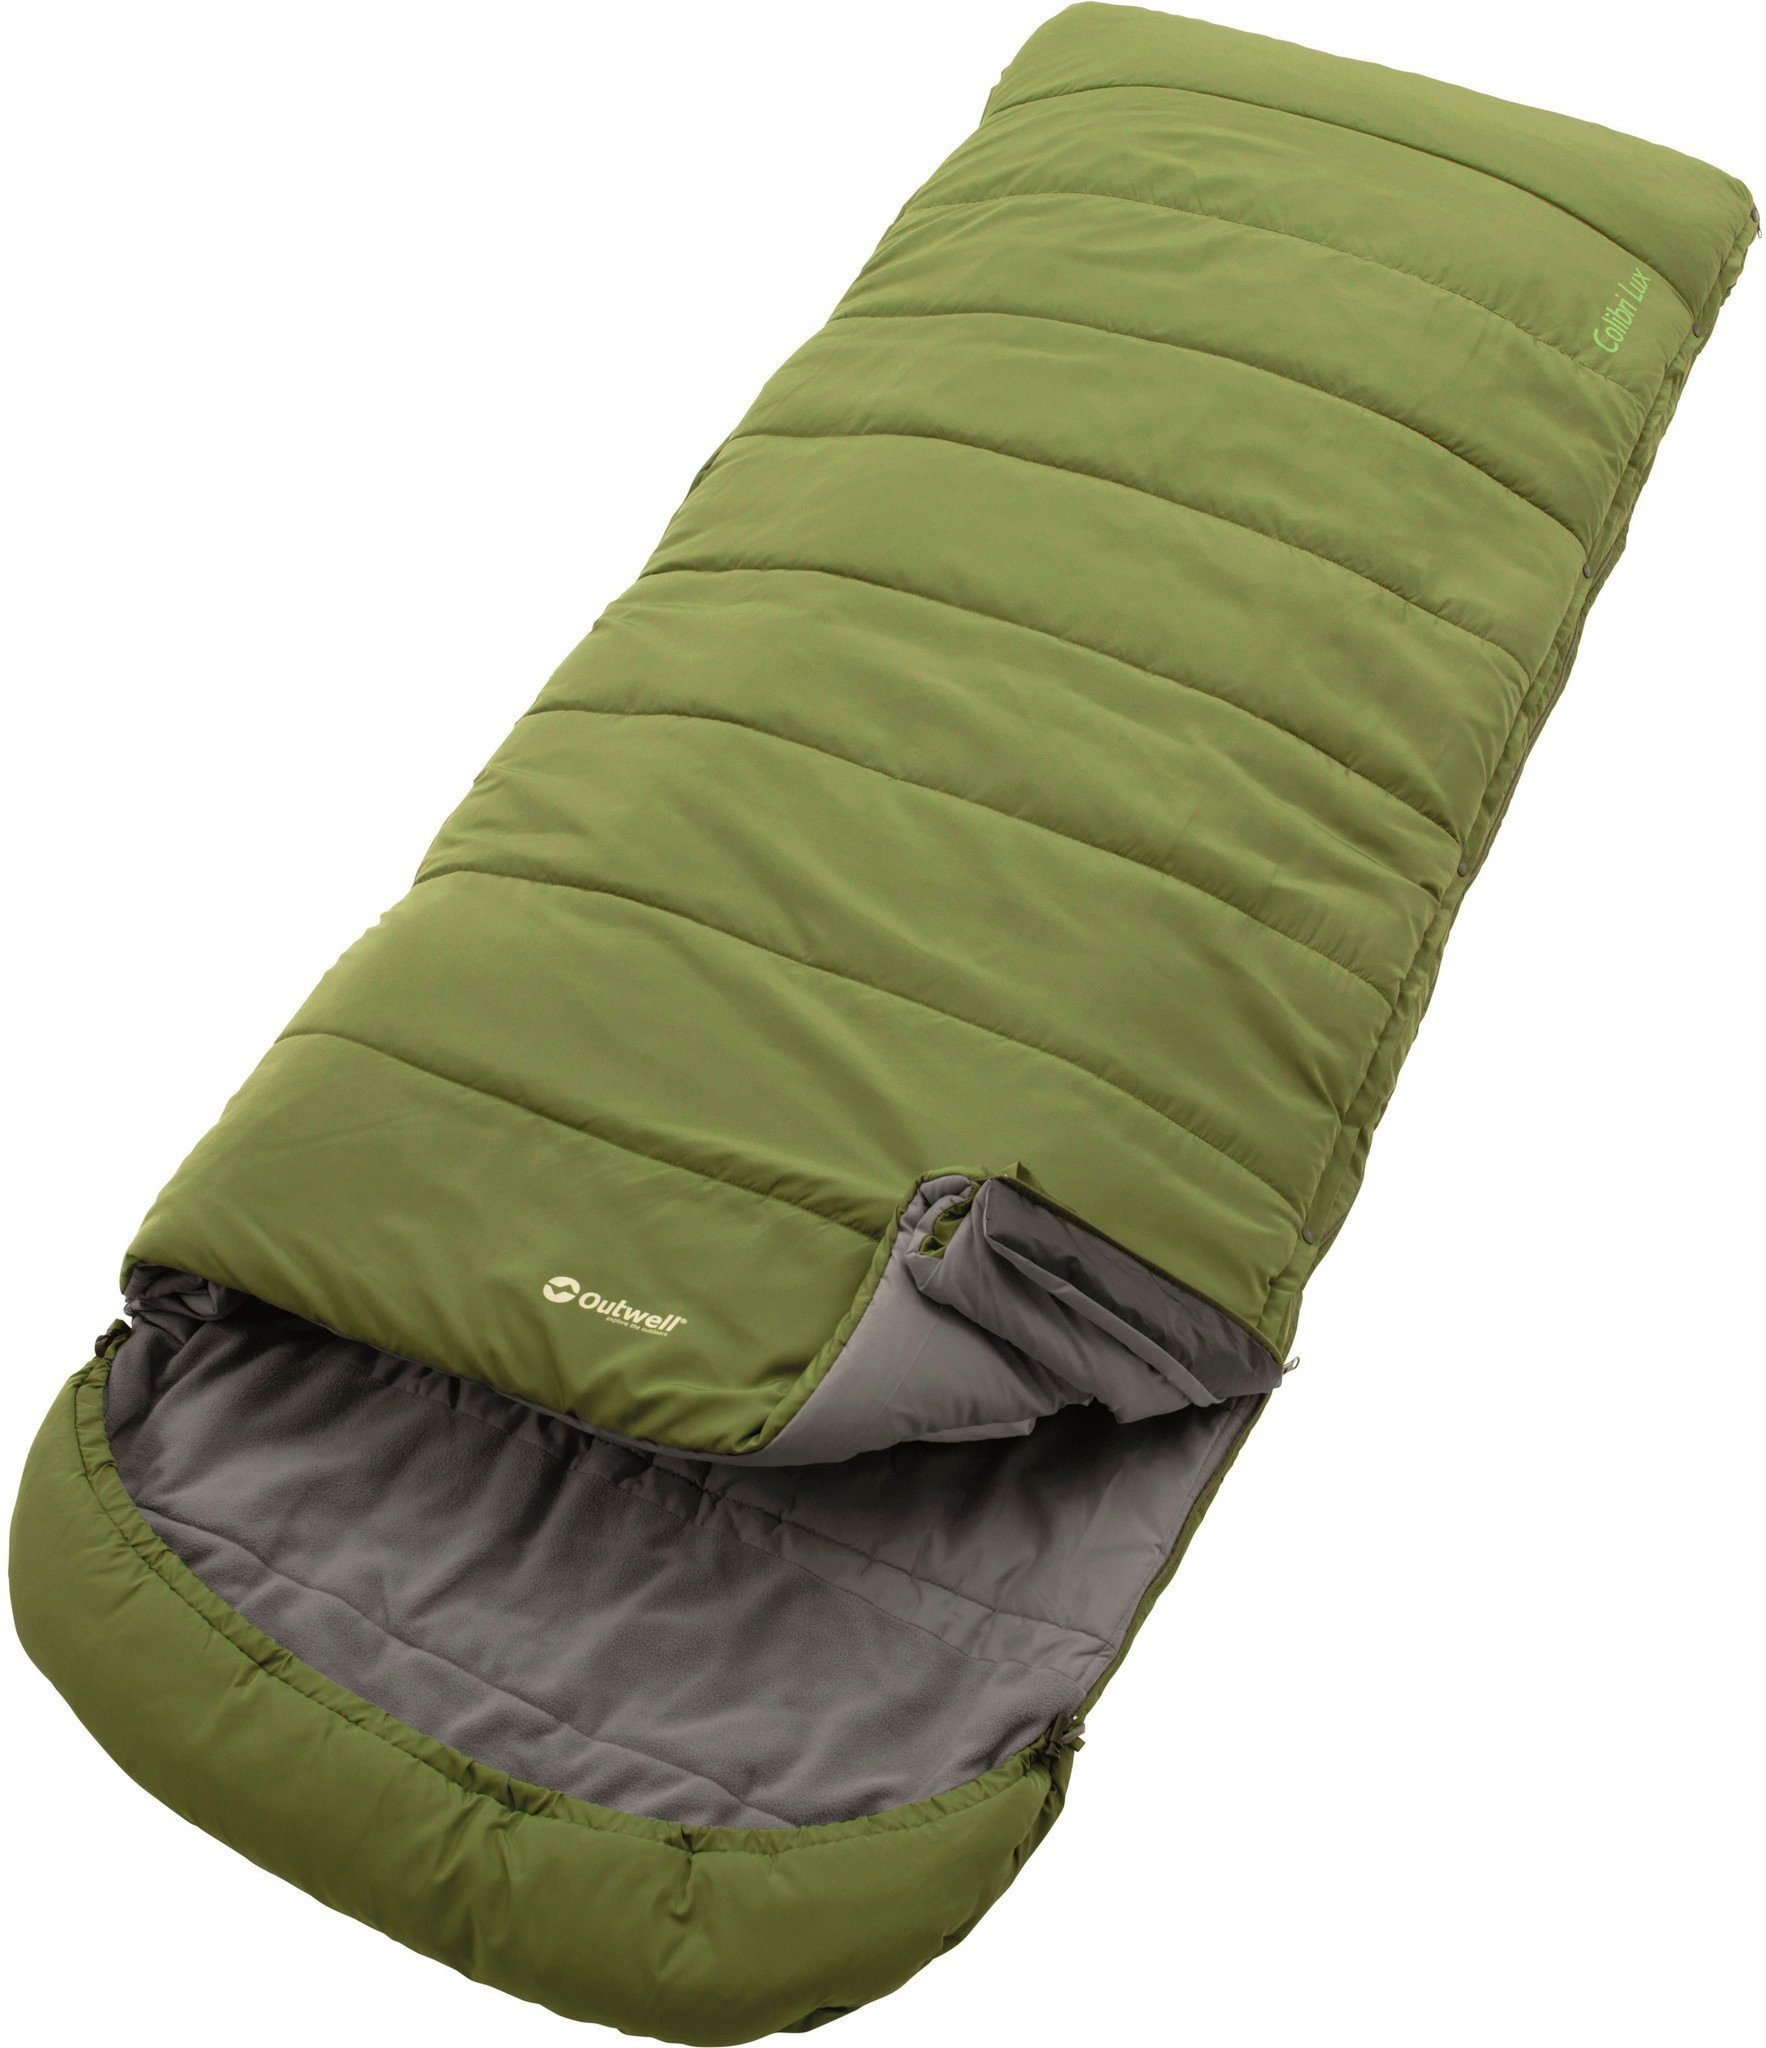 Outwell Schlafsack »Colibri Lux Sleeping Bag«